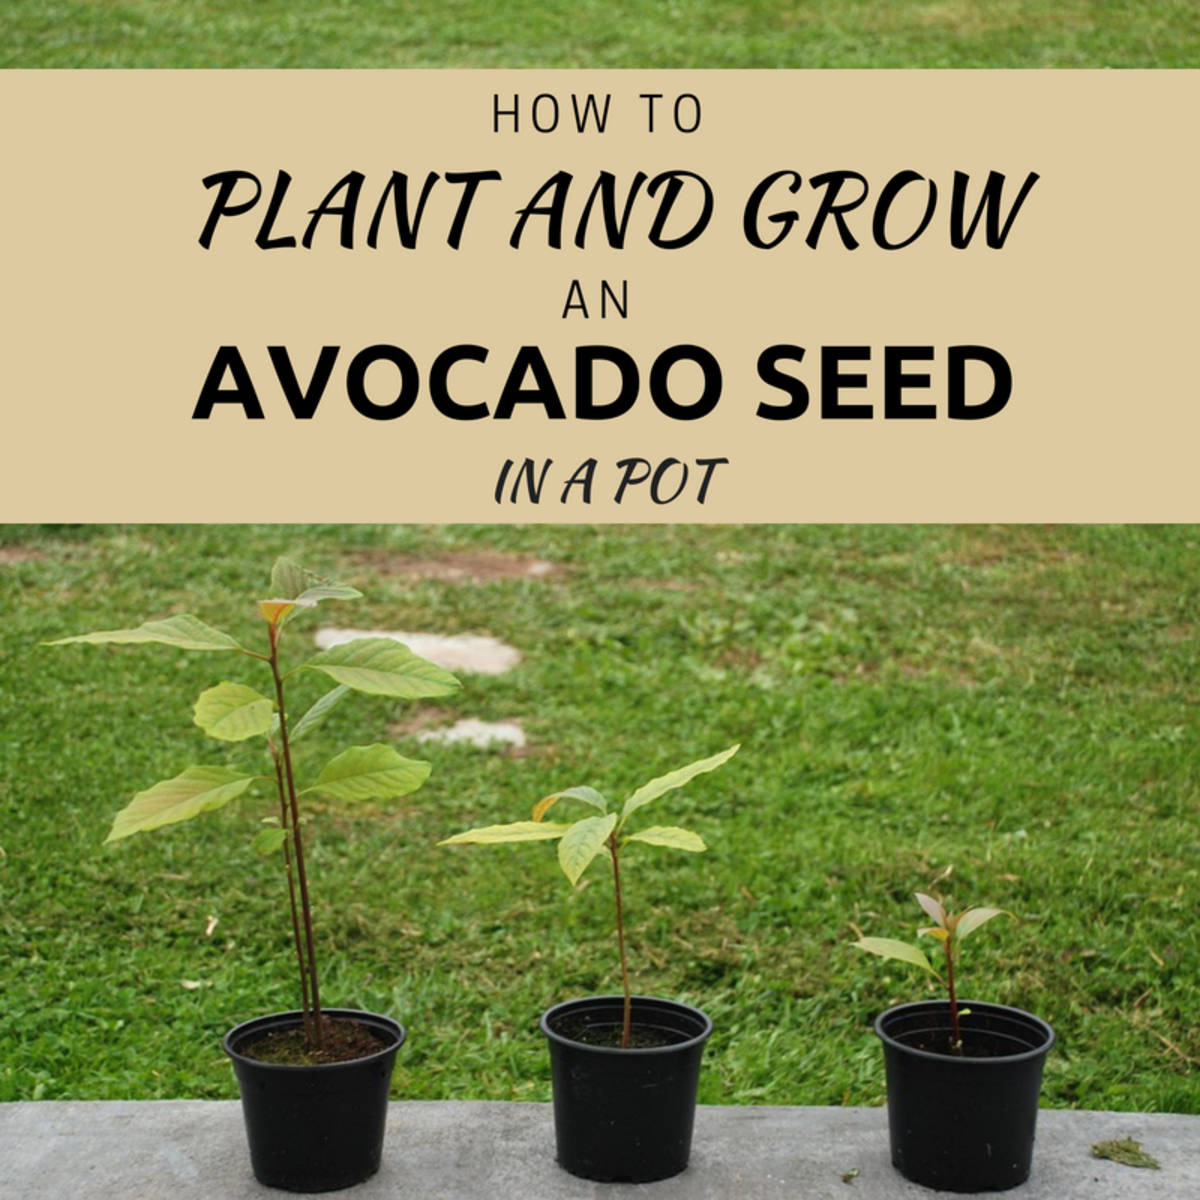 Avocado Plants Grown From Seed In A Pot Can Make Great Indoor